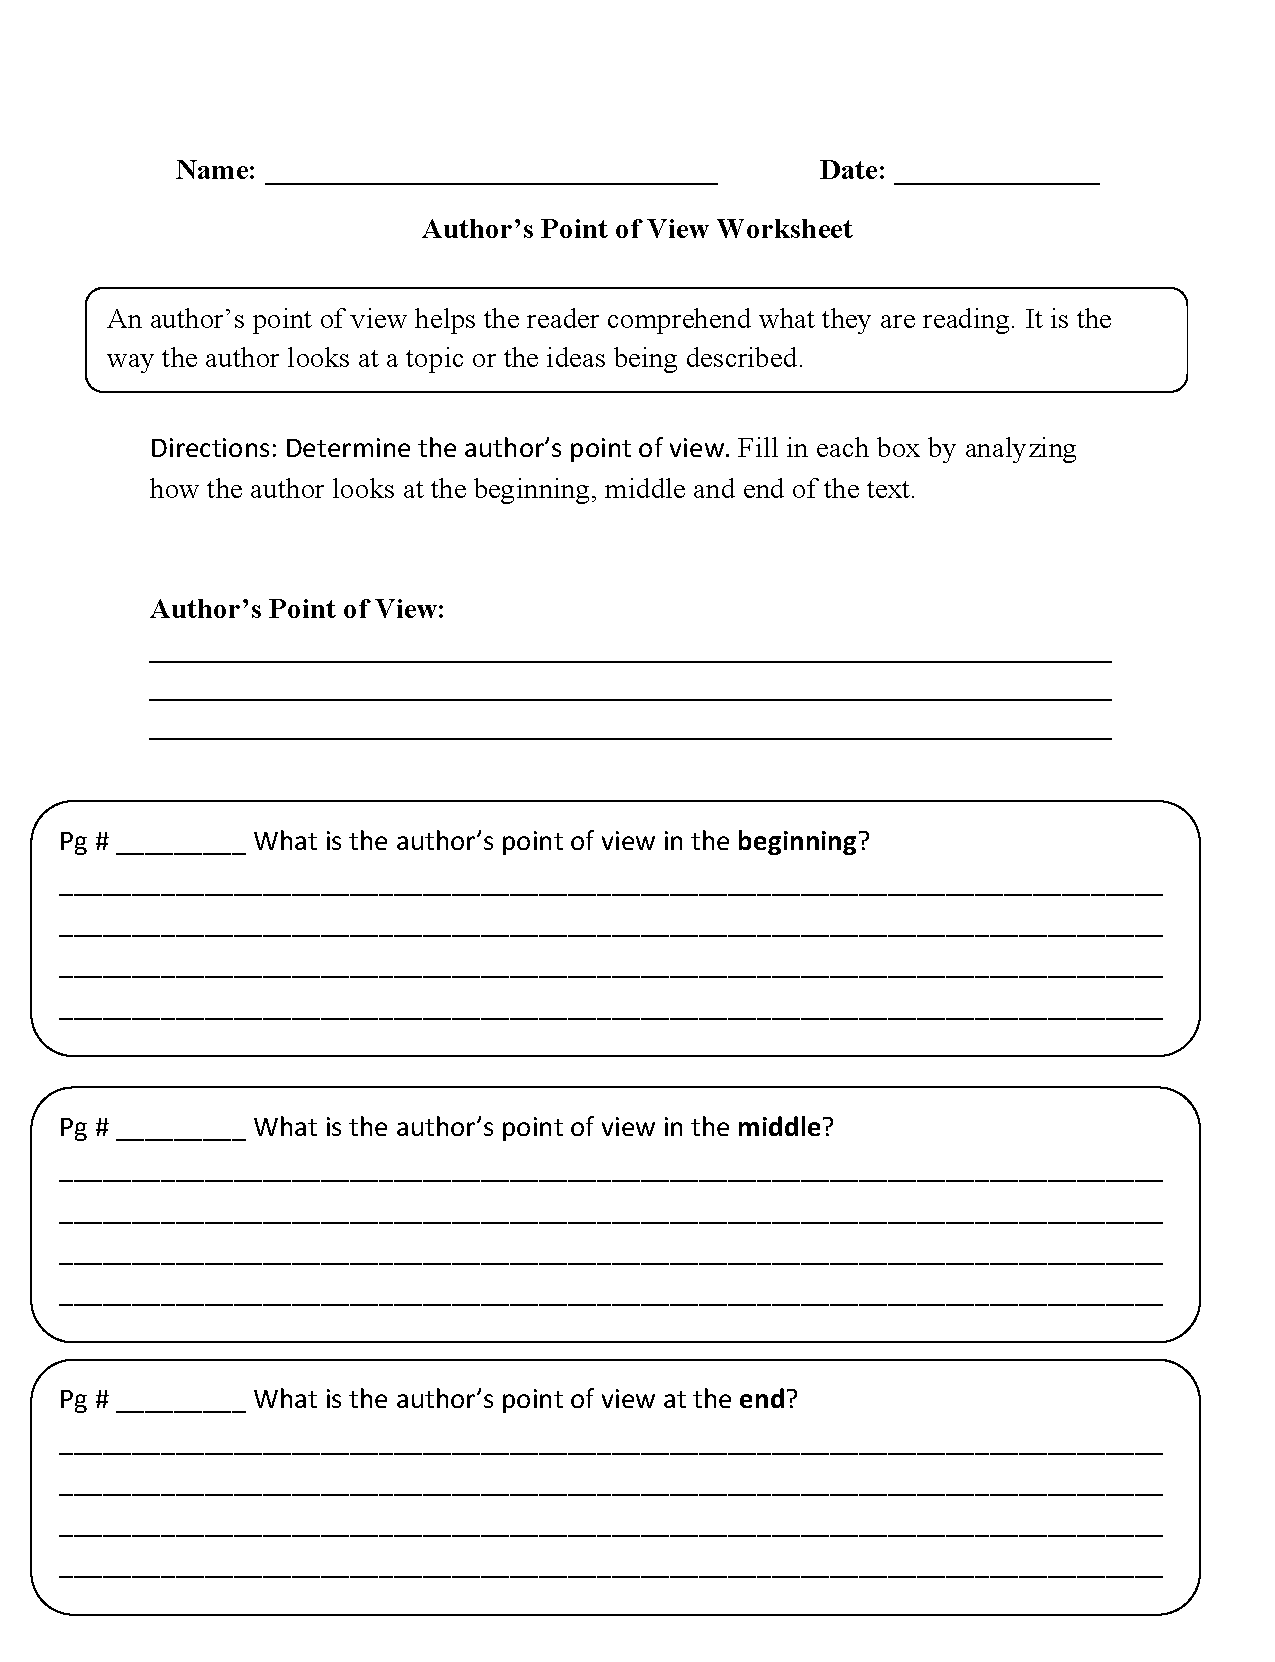 Weirdmailus  Stunning Englishlinxcom  Point Of View Worksheets With Excellent Point Of View Worksheets With Lovely Grade  Pattern Worksheets Also Dotted Number Worksheets In Addition Free Printable Home Budget Worksheet And Second Grade Phonics Worksheets Free As Well As Bigger Number And Smaller Number Worksheets Additionally Angles Worksheets Ks From Englishlinxcom With Weirdmailus  Excellent Englishlinxcom  Point Of View Worksheets With Lovely Point Of View Worksheets And Stunning Grade  Pattern Worksheets Also Dotted Number Worksheets In Addition Free Printable Home Budget Worksheet From Englishlinxcom